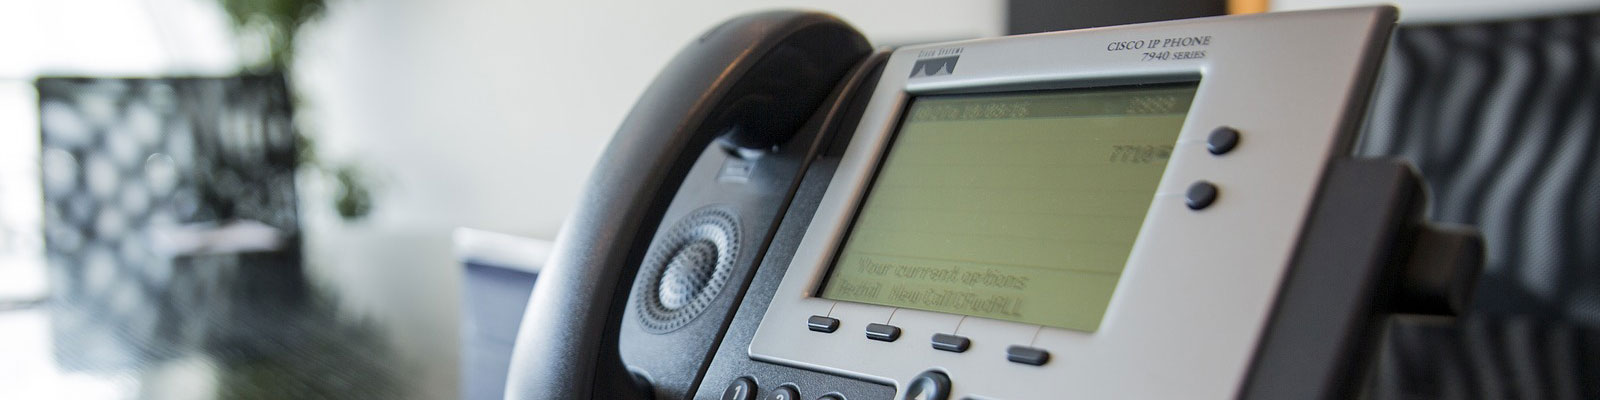 Voice Over Internet Protocol (VoIP) phone system with prompts provided by Woodstock Media Group